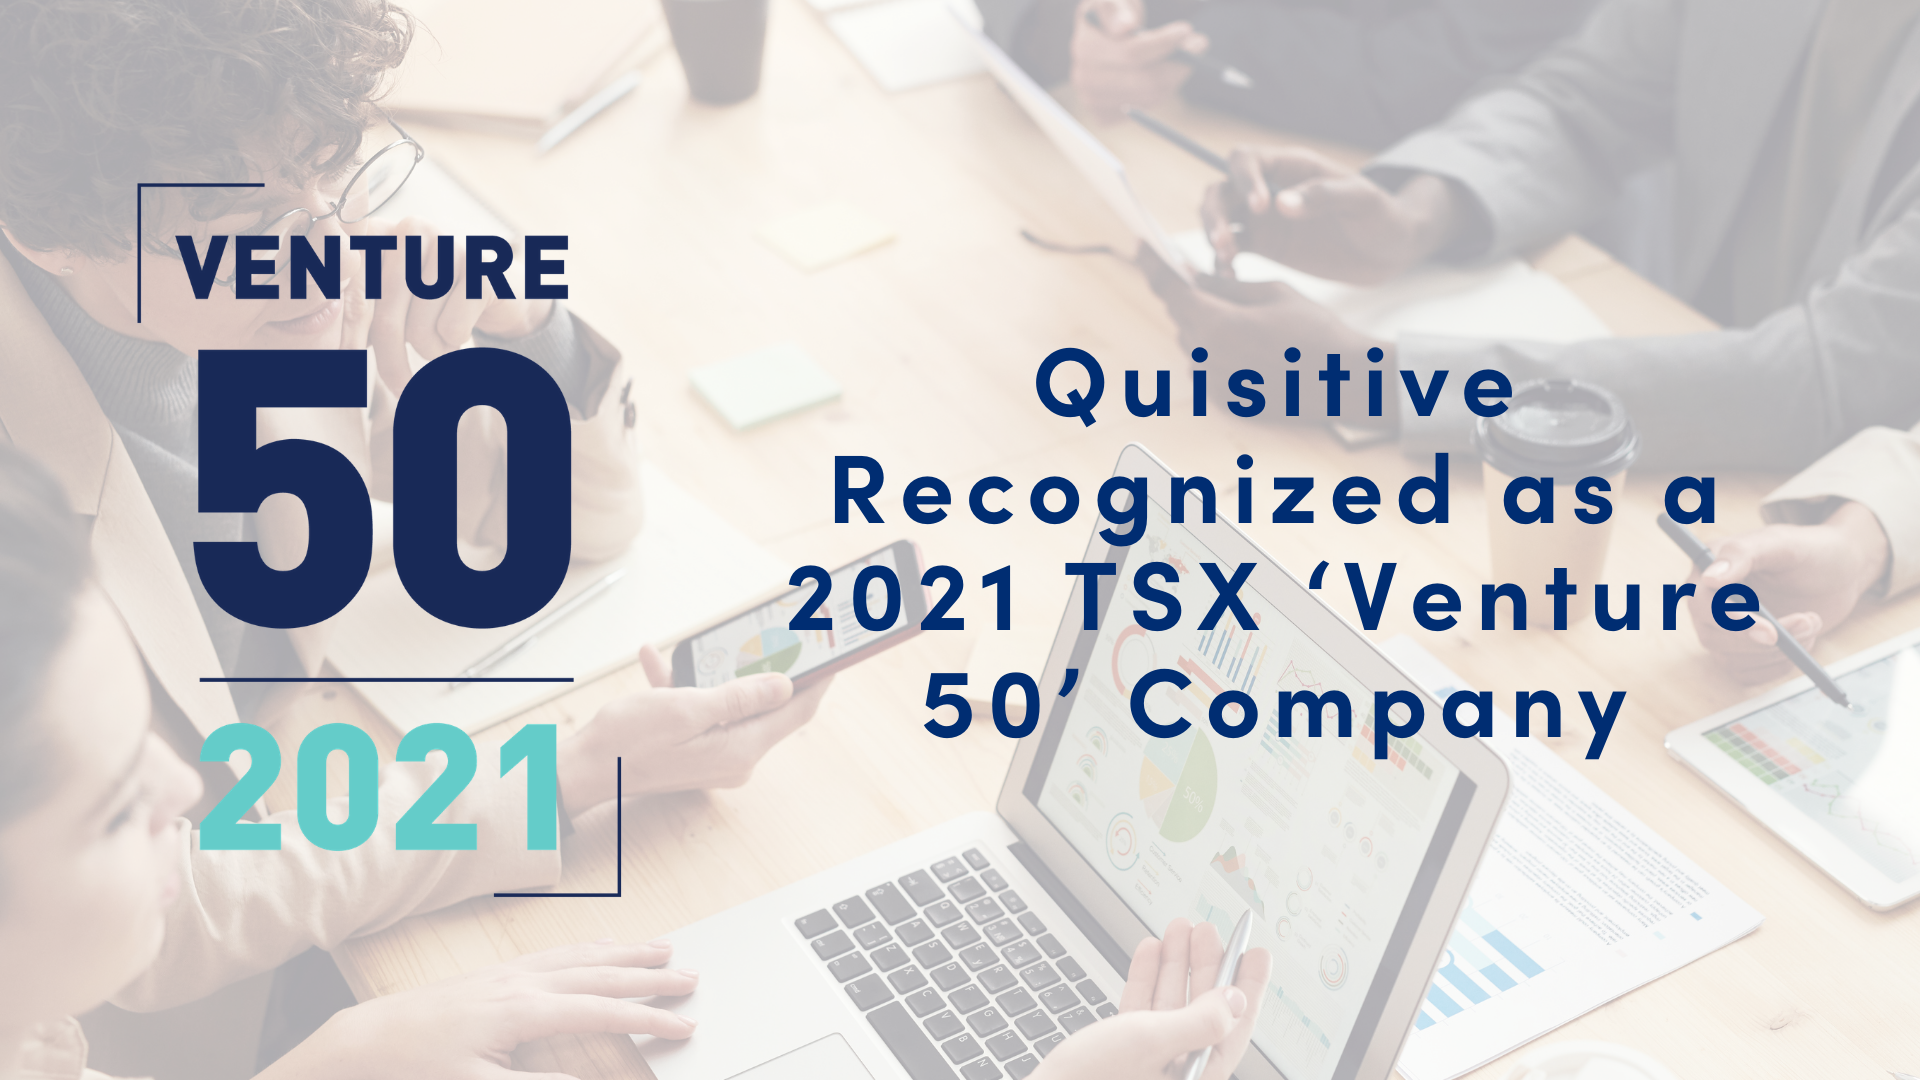 Image of two women collaborating with Venture 50 2021 logo and text that reads Quisitive Recognized as a 2021 TSX Venture 50 Company